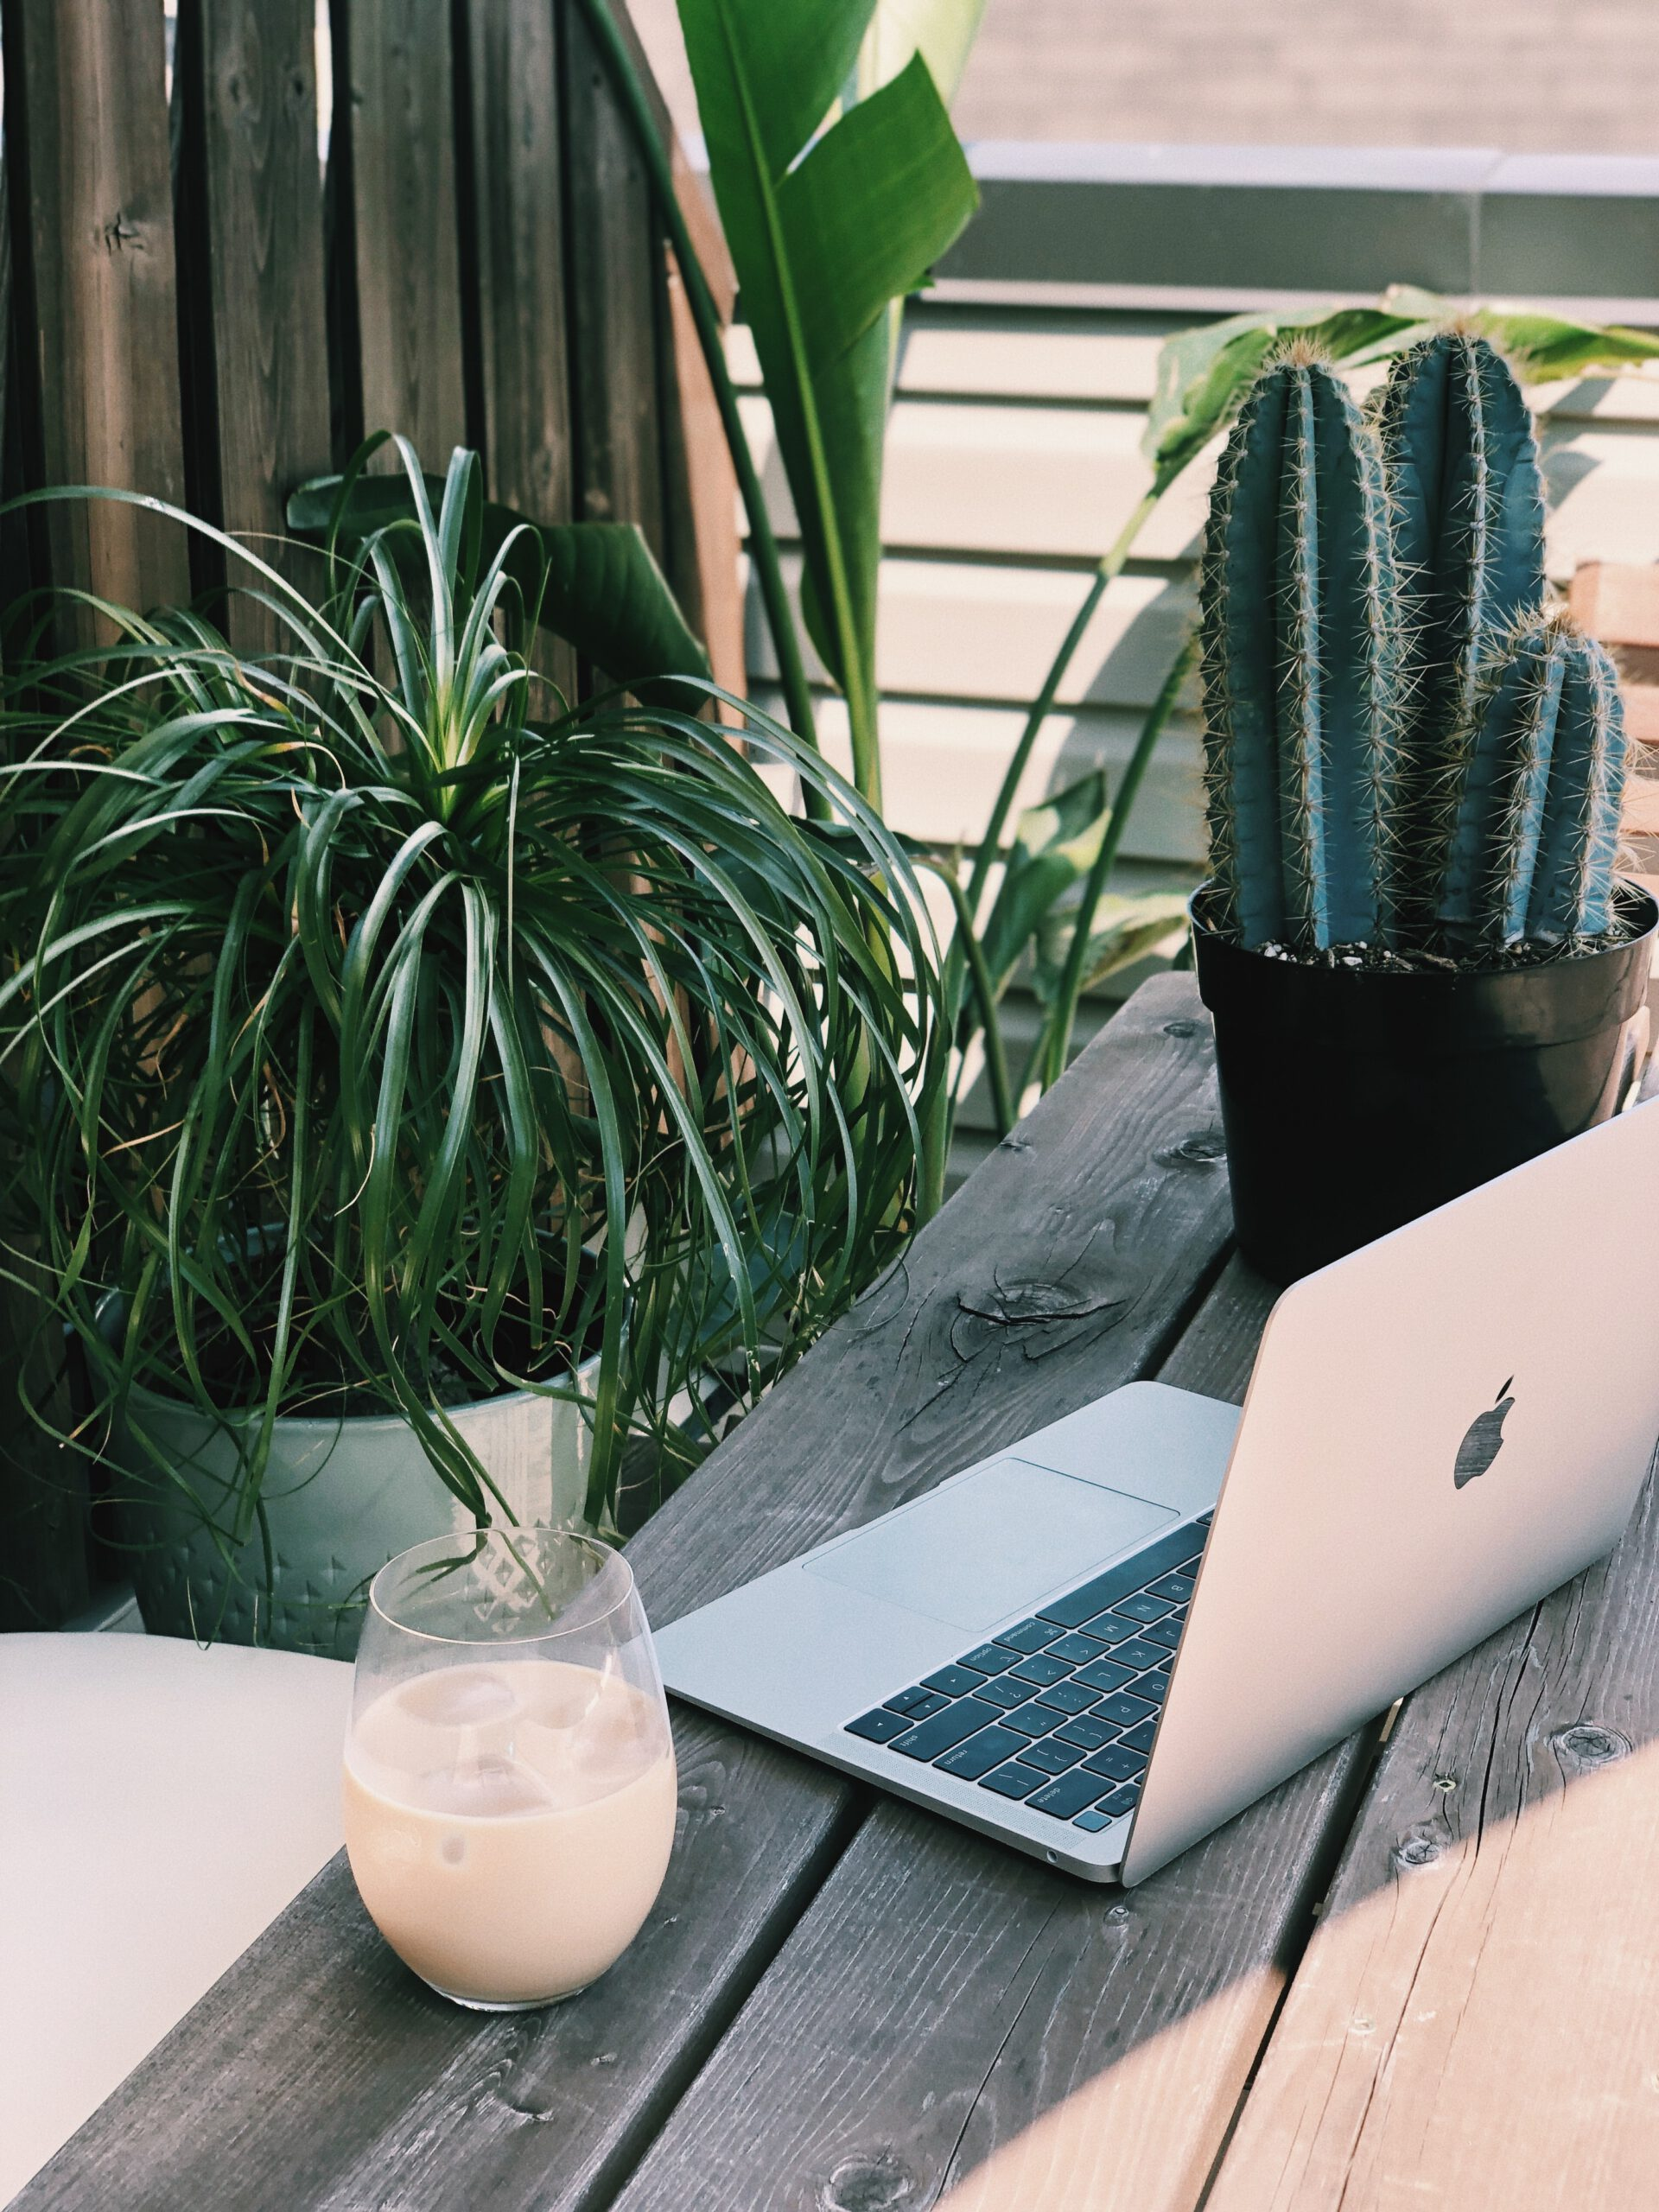 laptop at table outside with plants and coffee